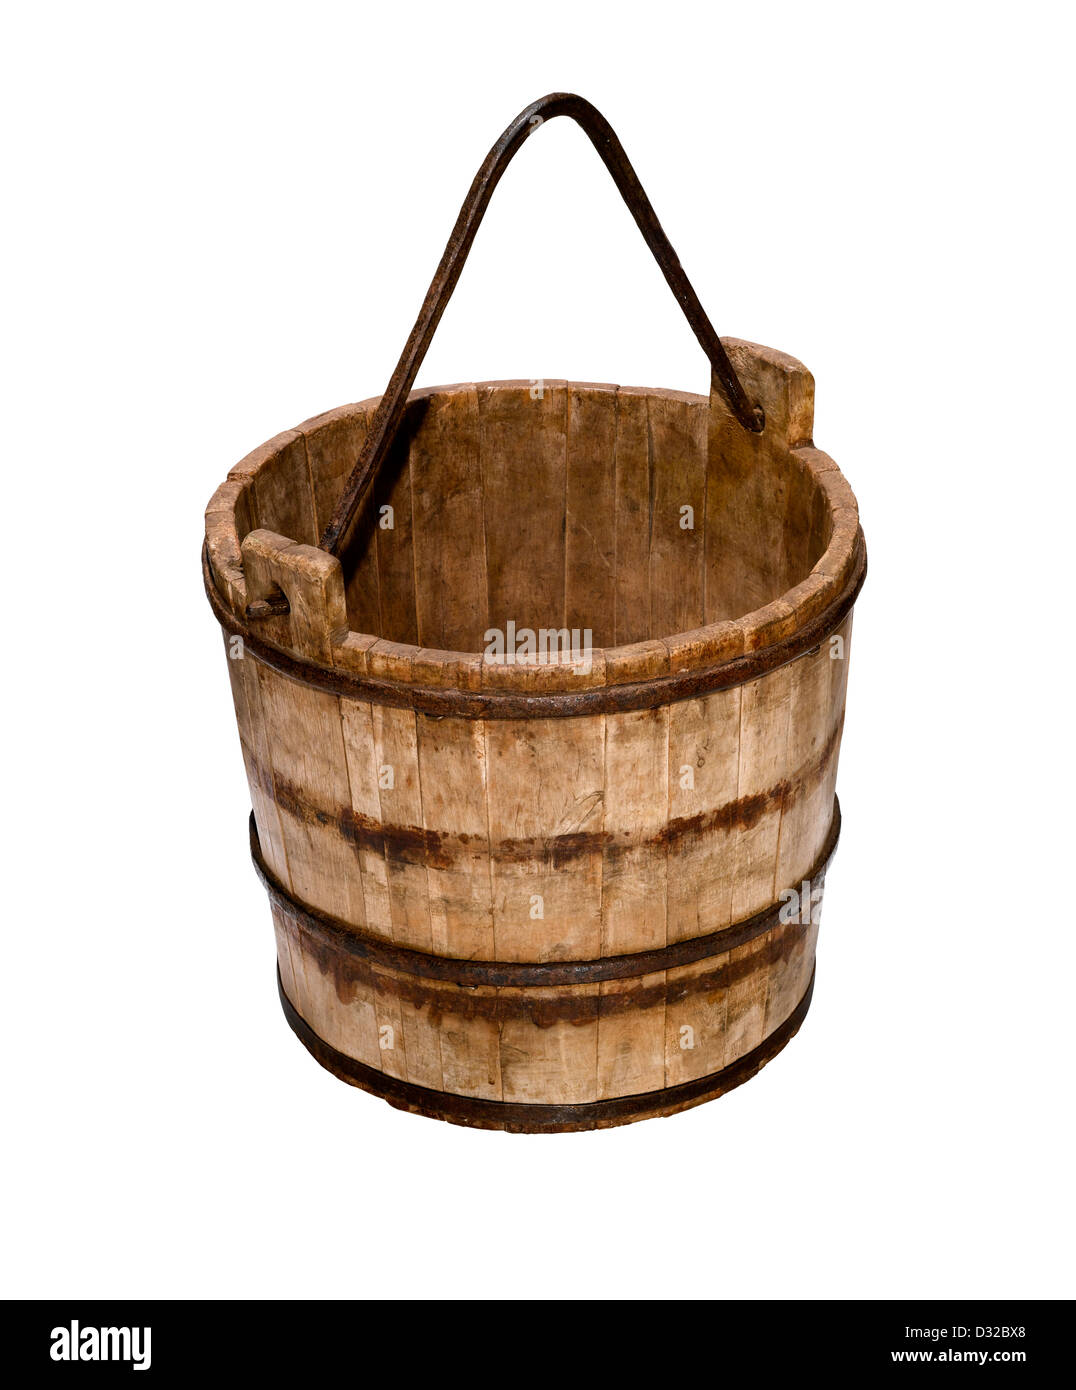 An old fashioned wooden bucket or pail with its handle up - Stock Image